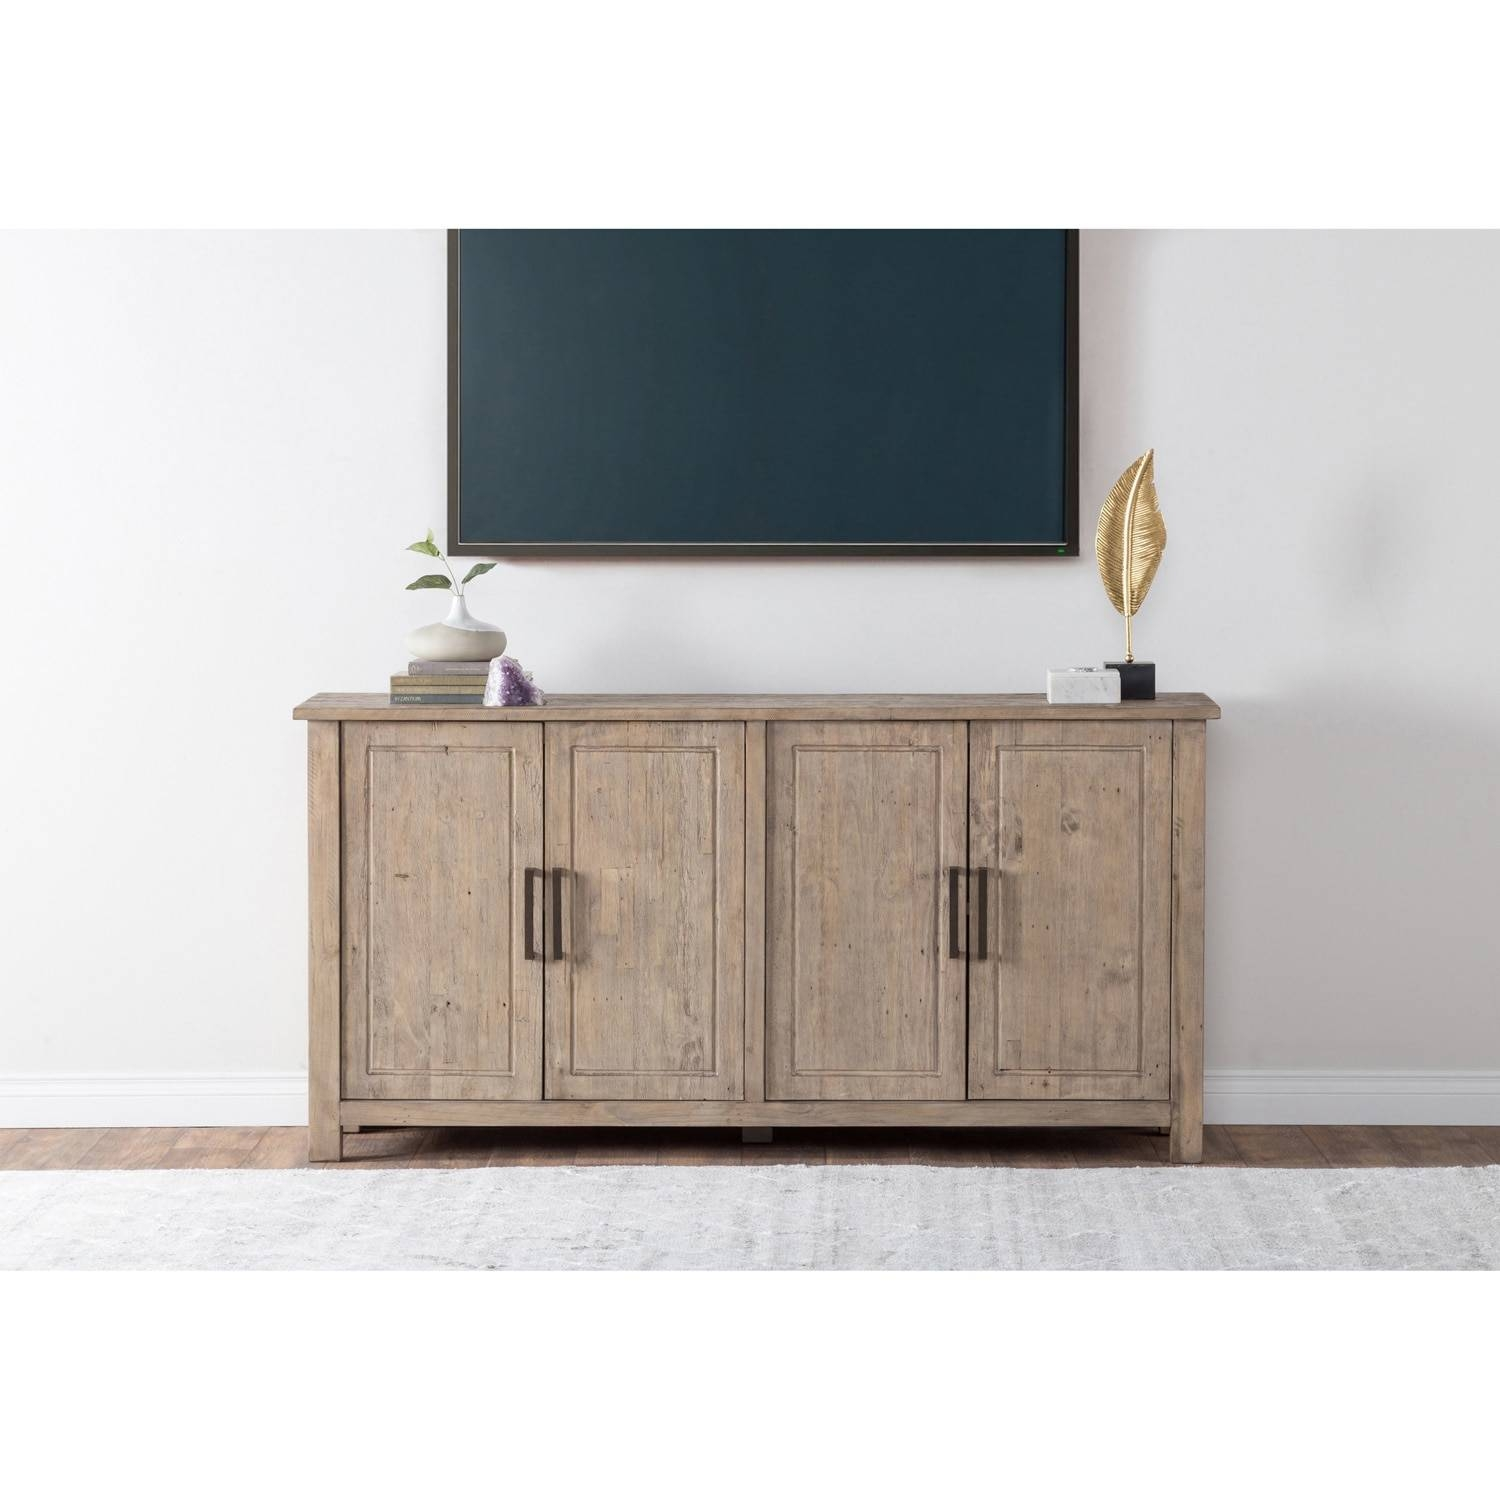 Aires Reclaimed Wood 72 Inch Sideboardkosas Home – Free Inside Current 14 Inch Deep Sideboards (#1 of 15)